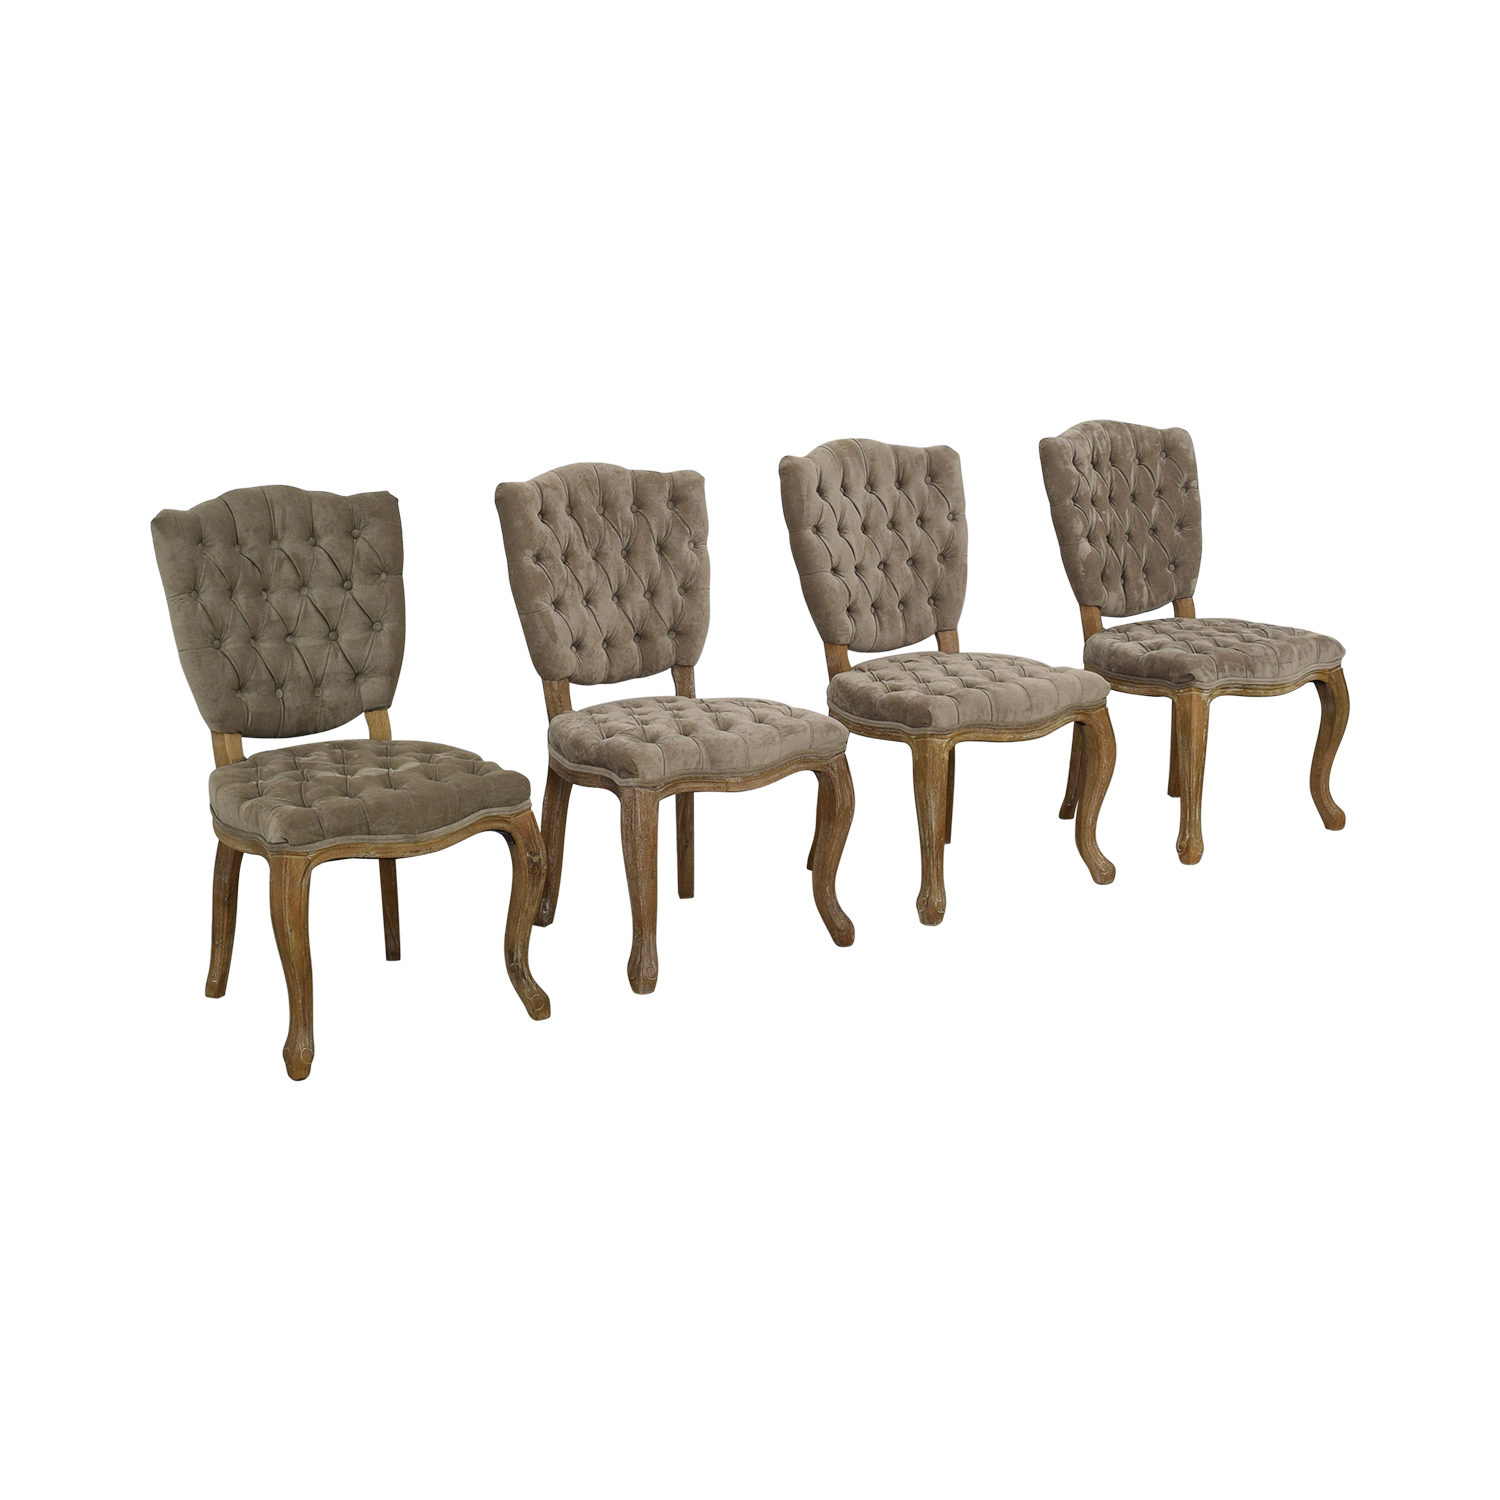 Arhaus Ava Side Chairs / Chairs